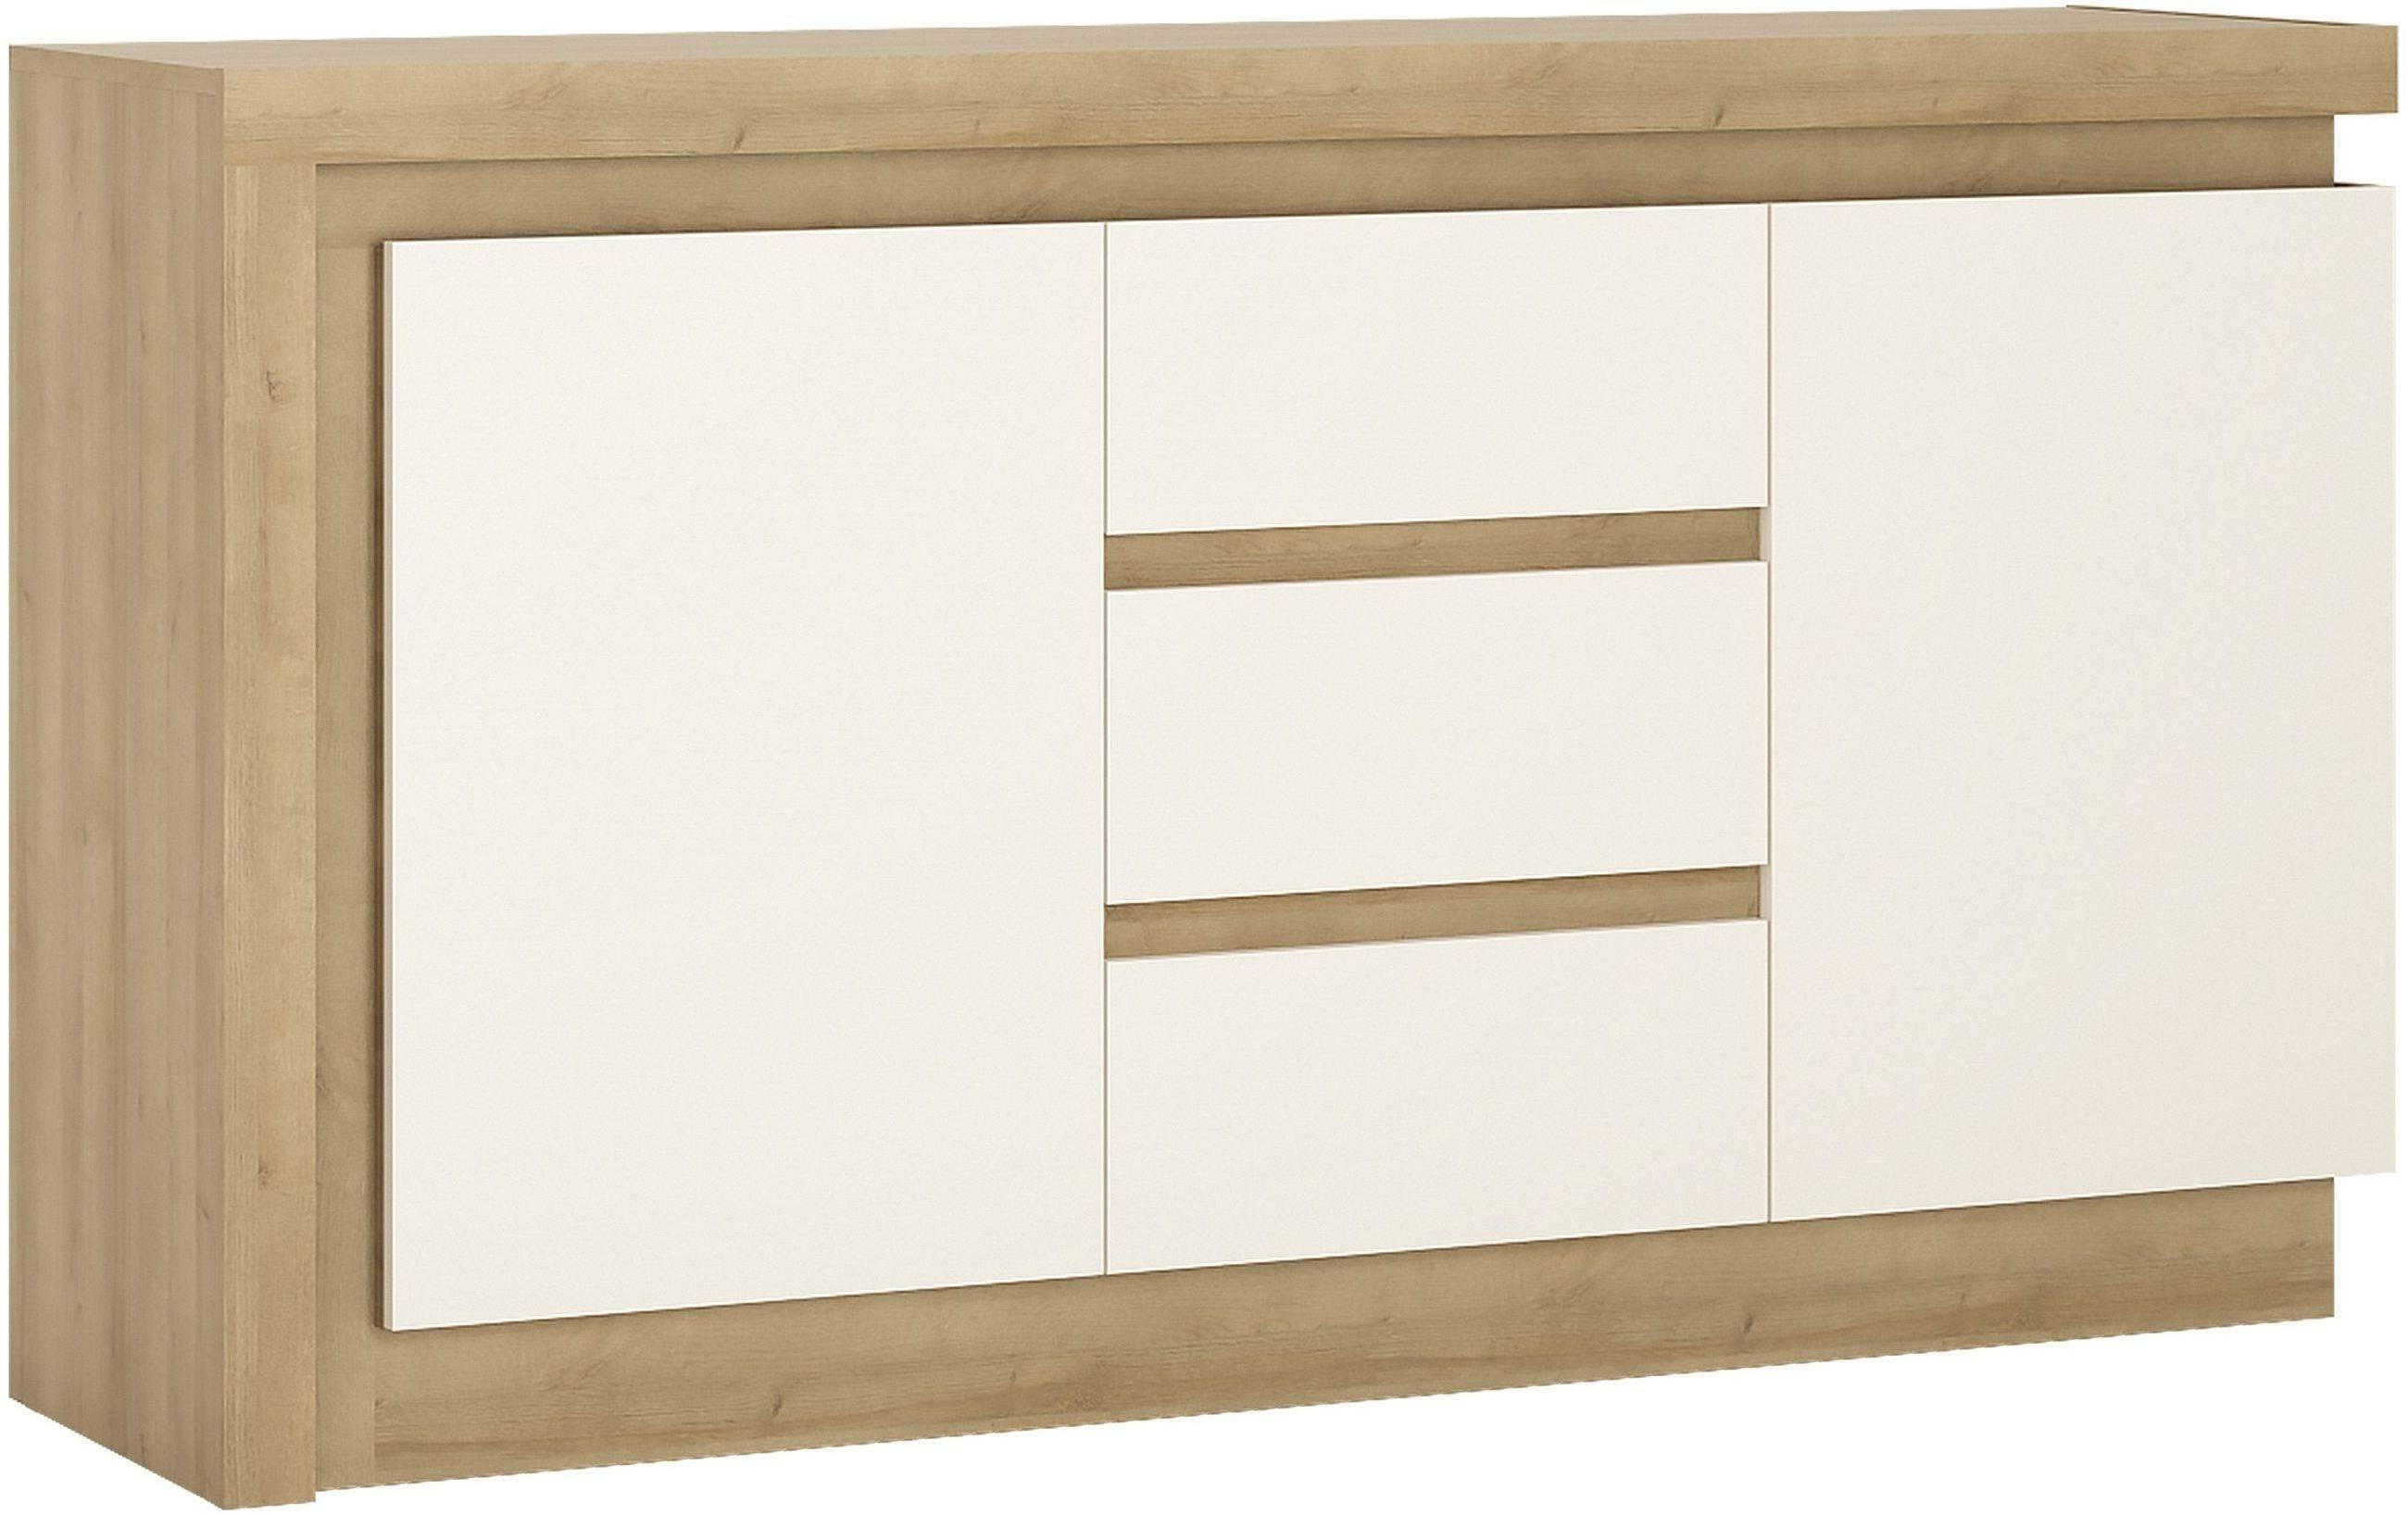 Buy Lyon Riviera Oak And White High Gloss Sideboard - 2 Door 3 for White Gloss Sideboards (Image 4 of 30)